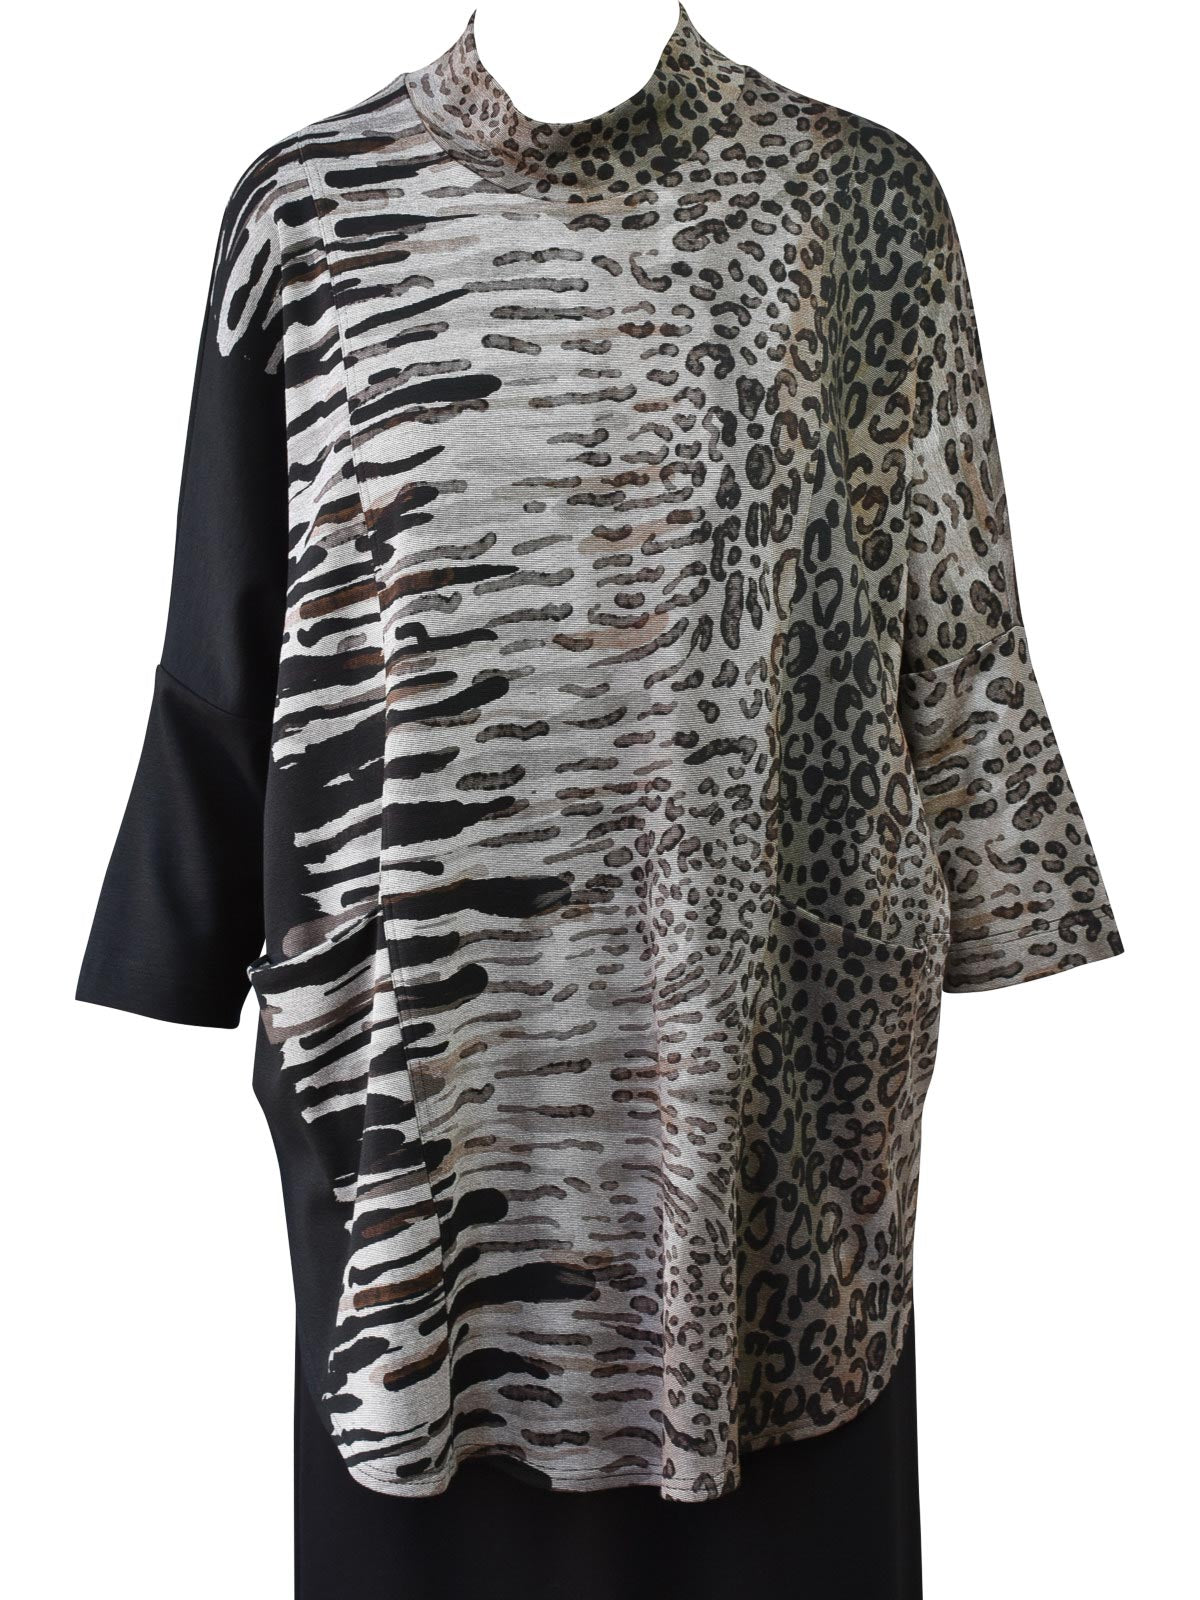 Q'Neel Animal Print Two Pocket Top, Black Multi